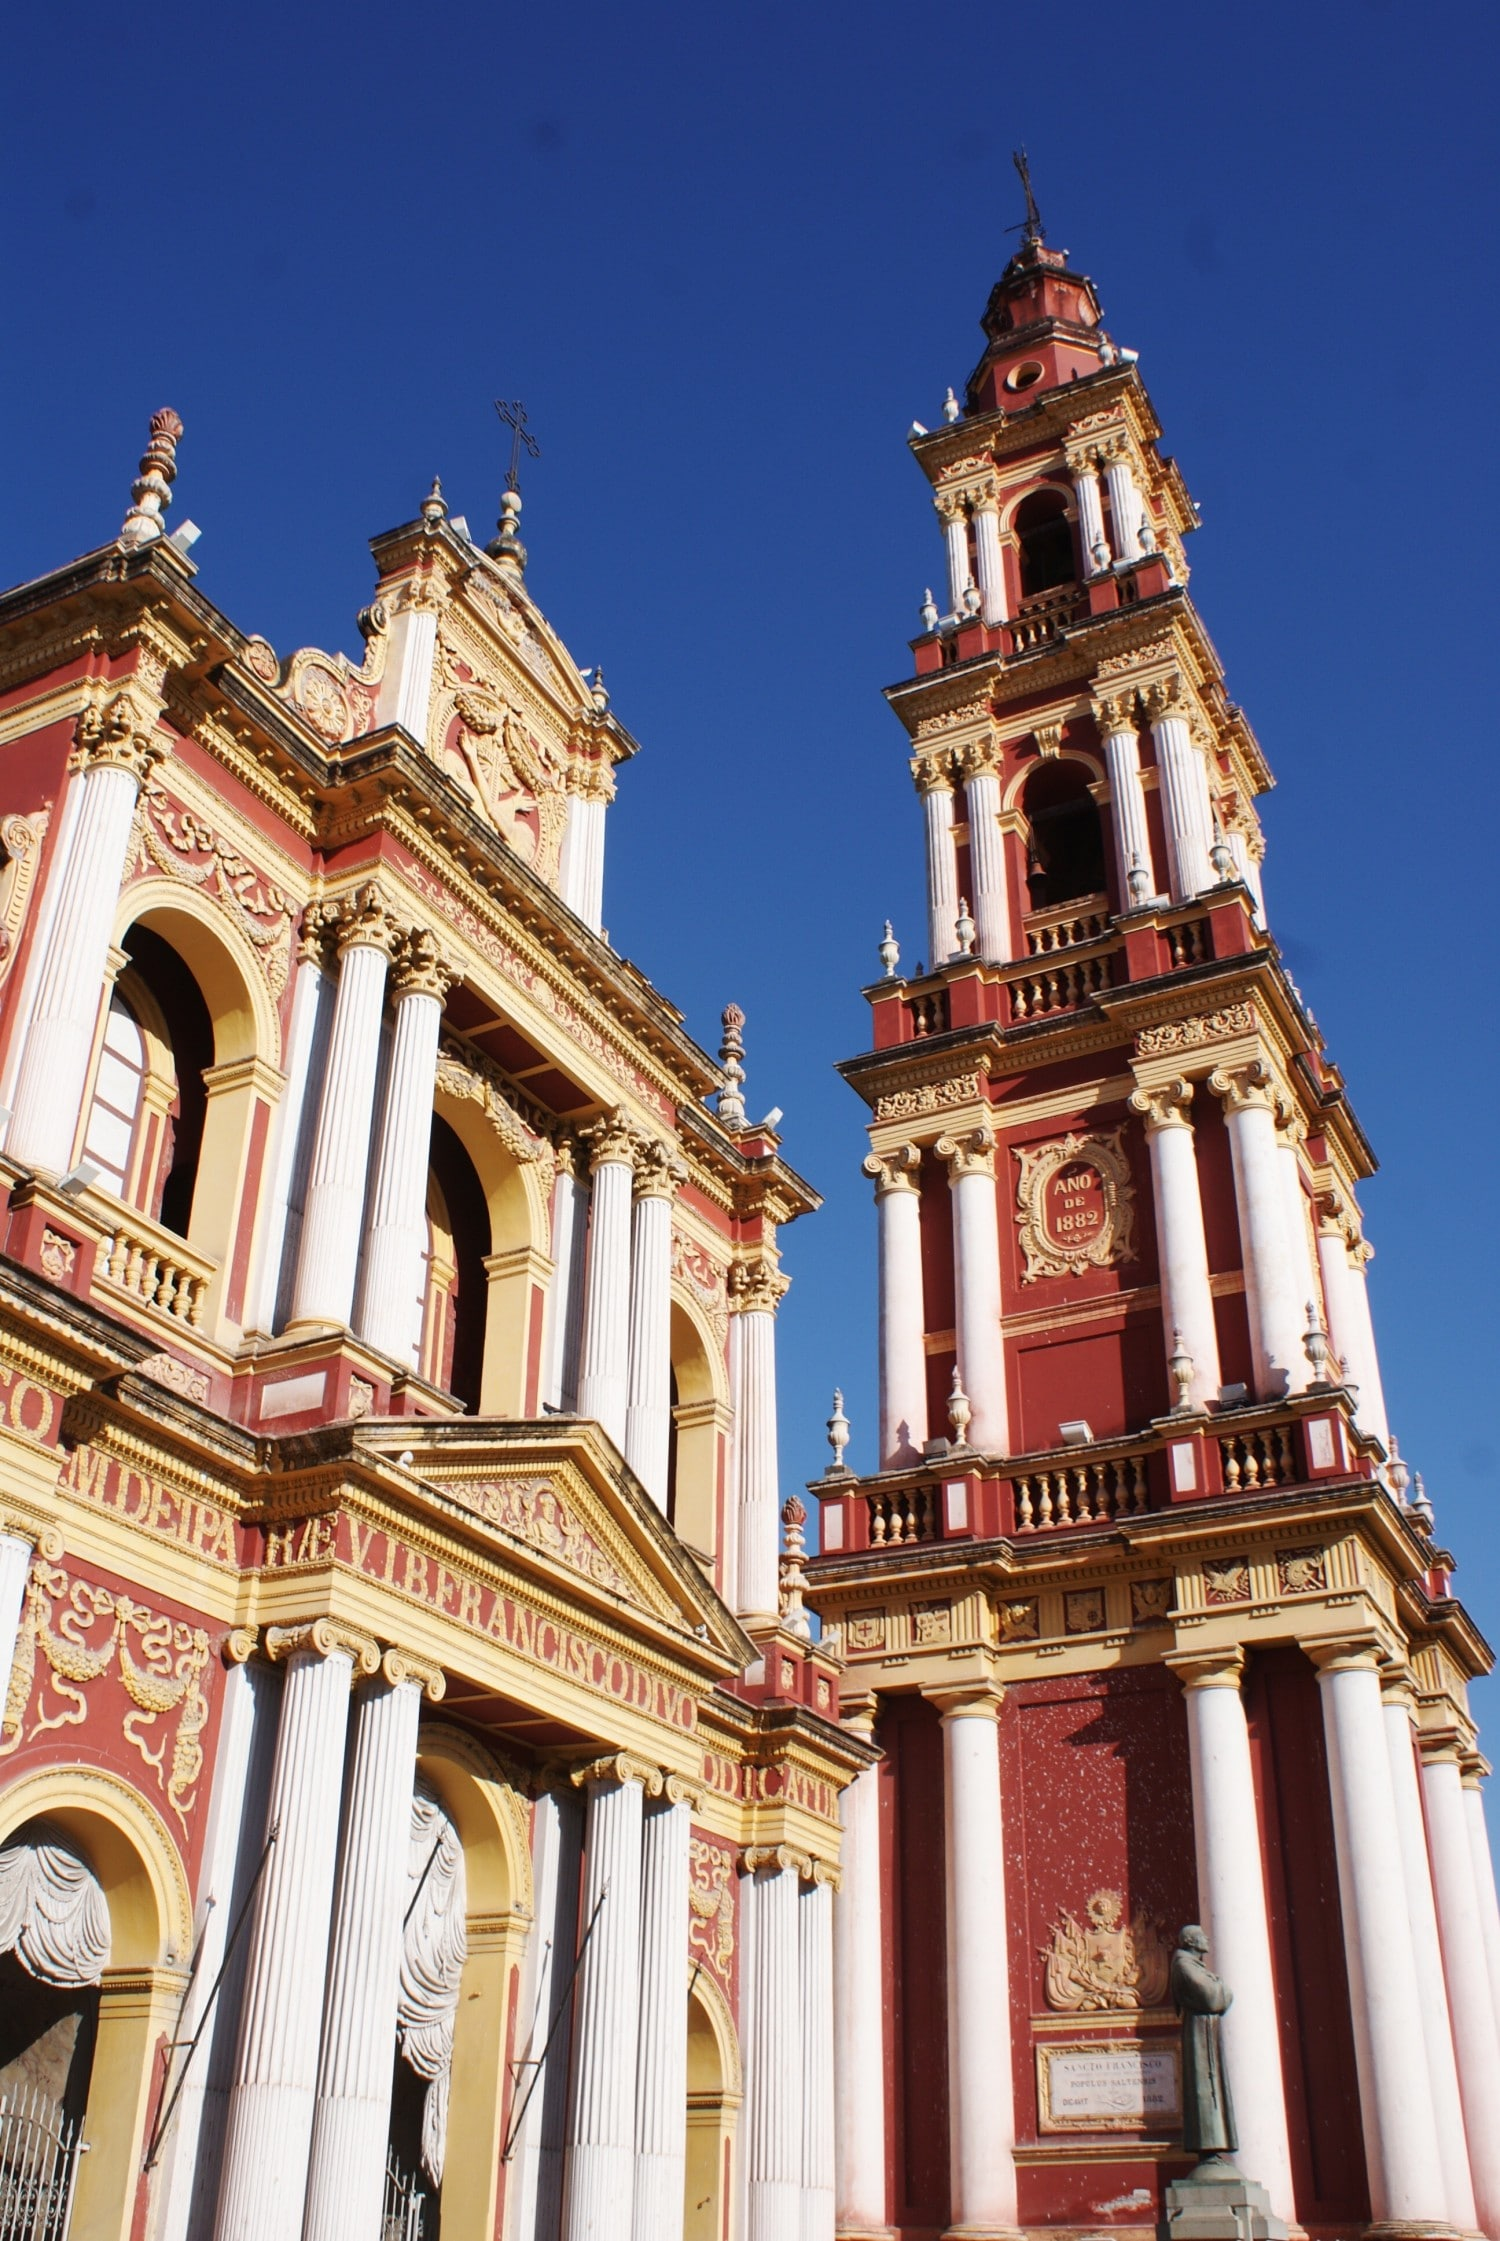 Iglesia San Francisco, Salta - one of the highlights in Argentina